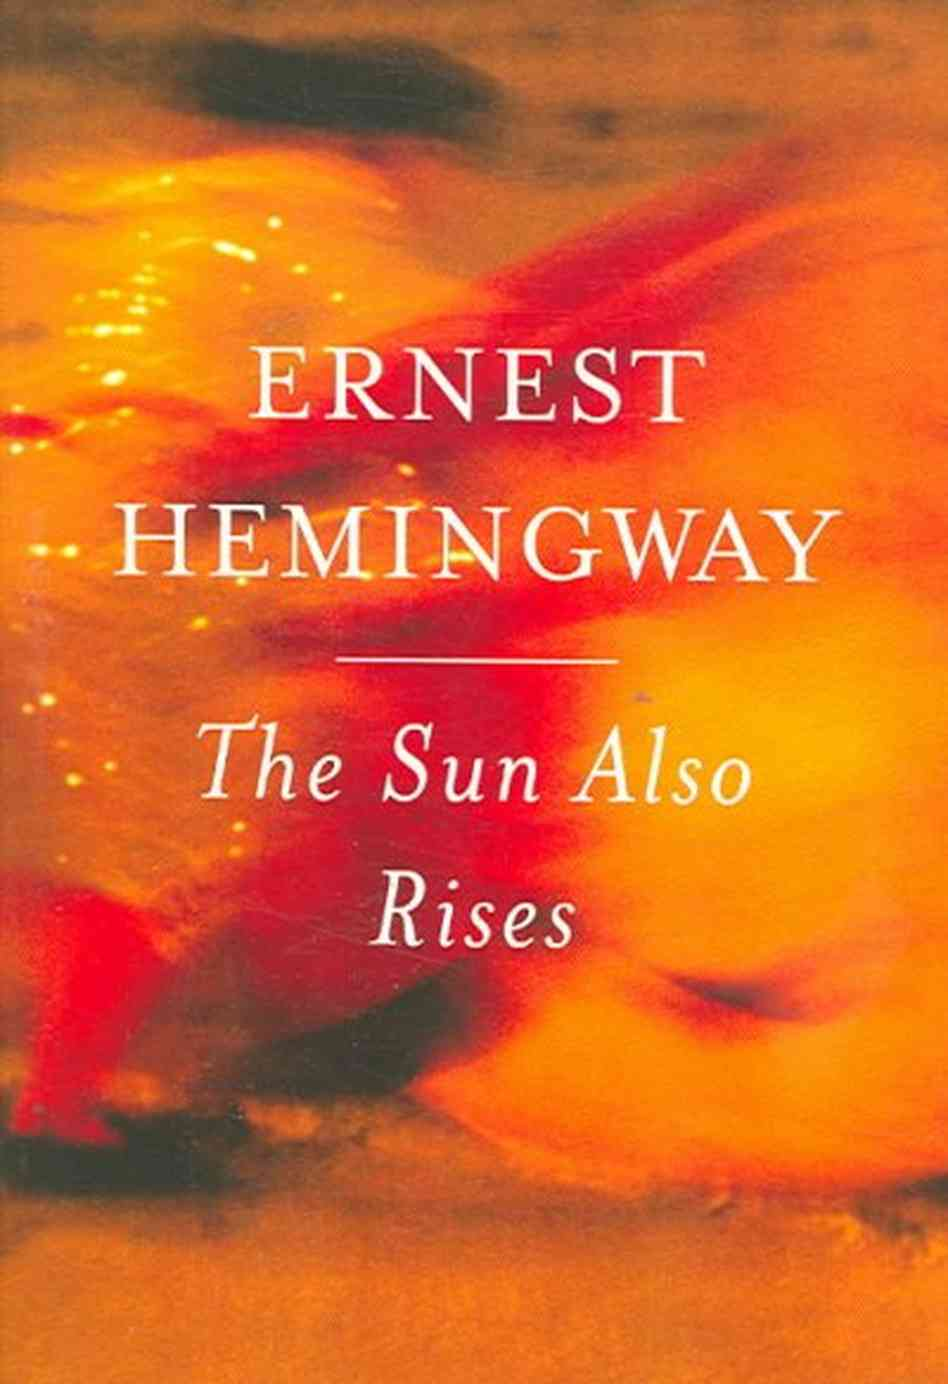 The Sun Also Rises by Ernest Hemingway Beautiful Book Novel Blog.jpg